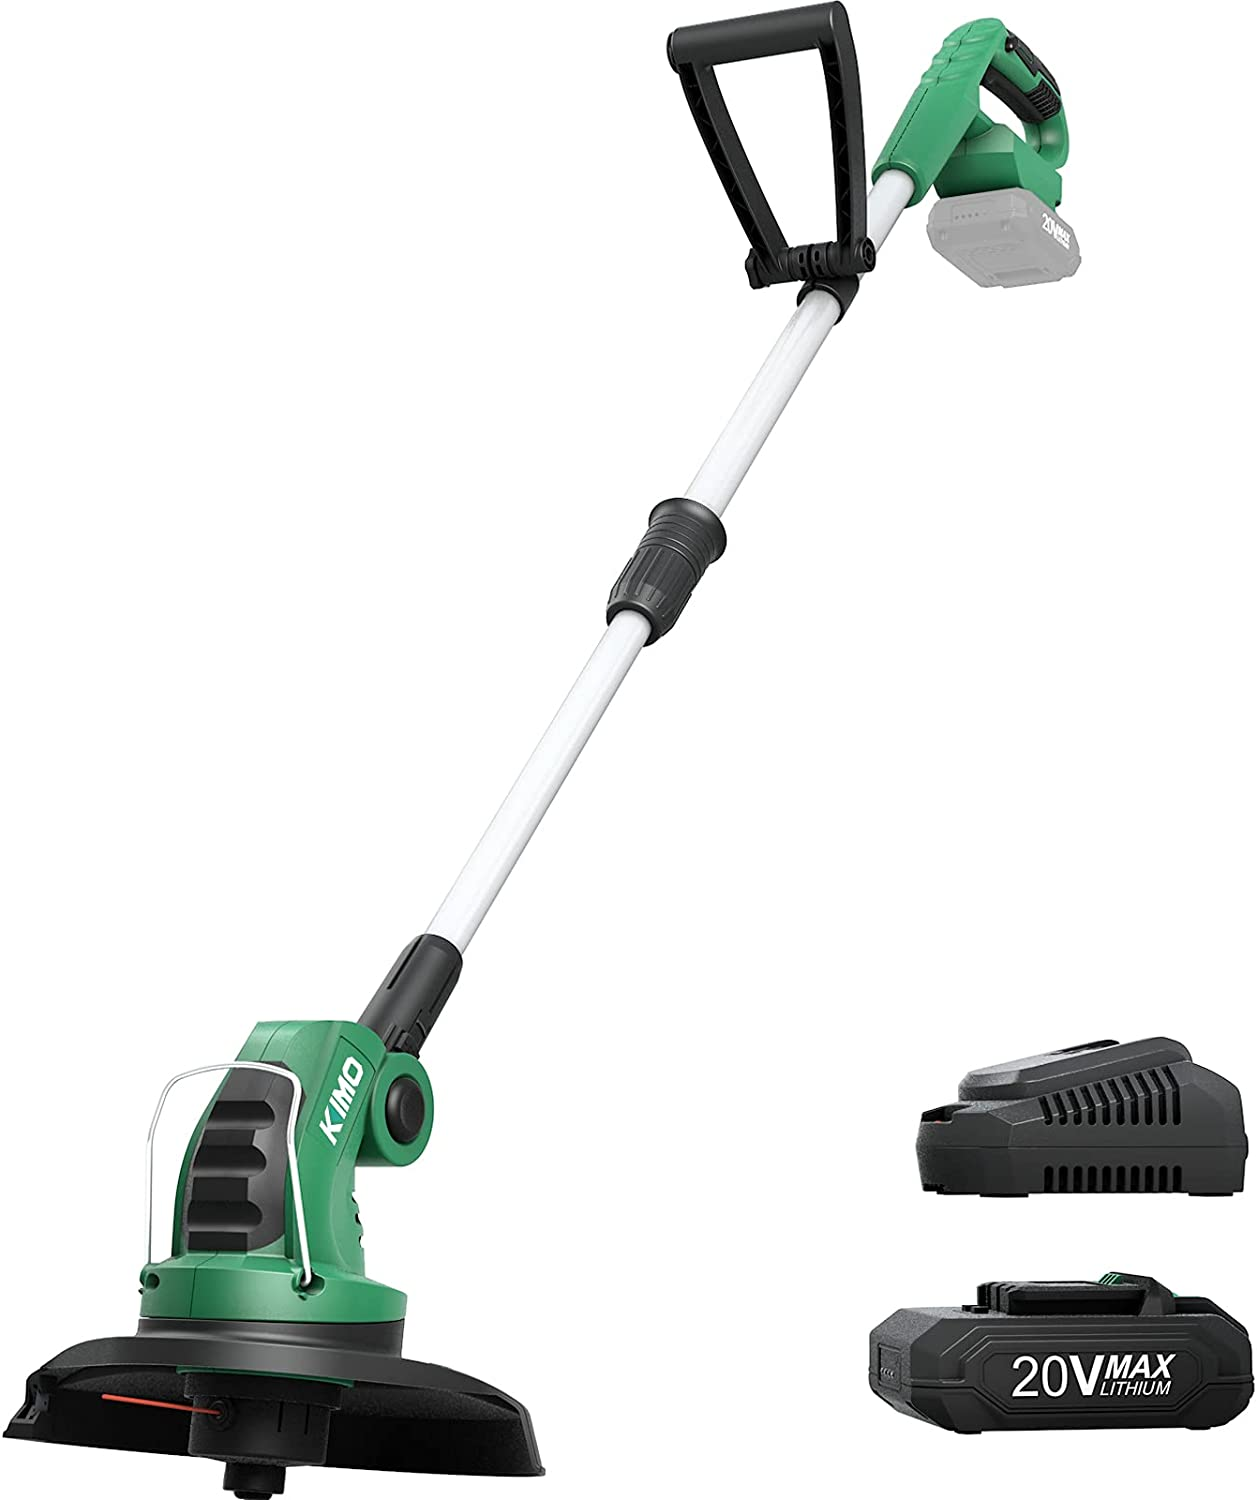 KIMO Weed Wacker, 20V Cordless String Trimmer/Edger w/ 2.0Ah Lithium-ion Battery & Charger, Telescopic Rod, 10